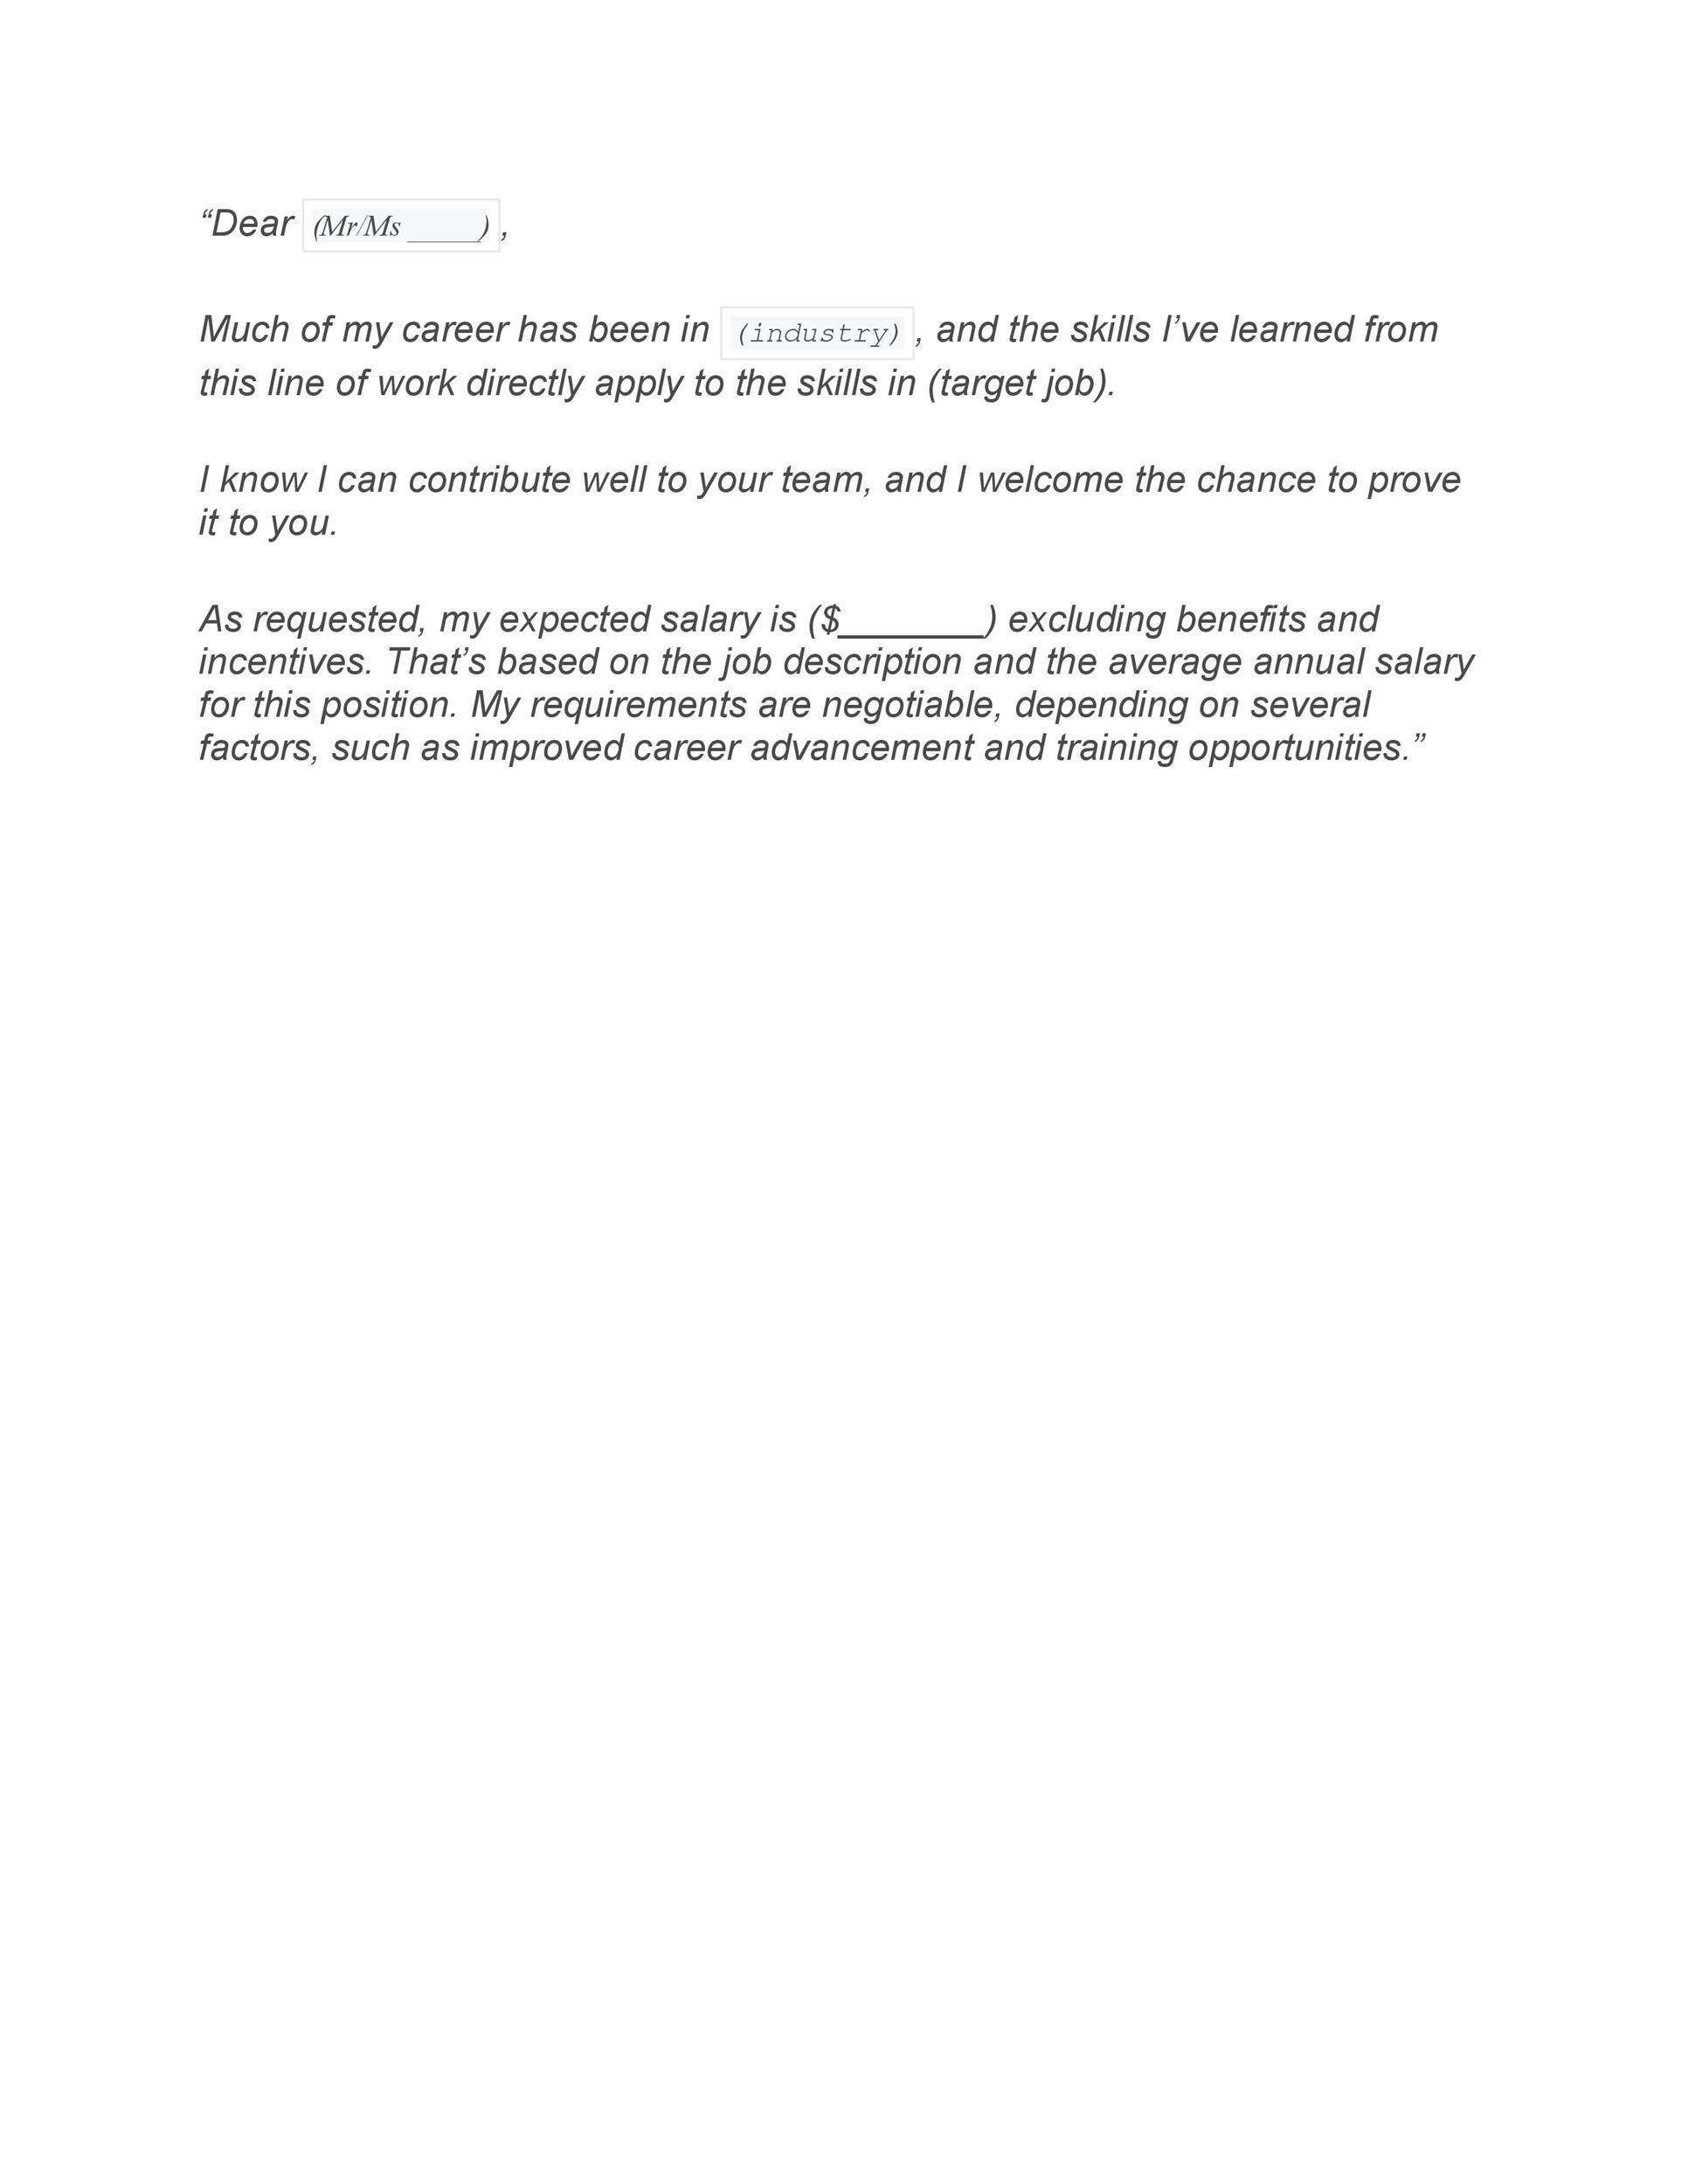 Free Salary Requirements Cover Letter 27